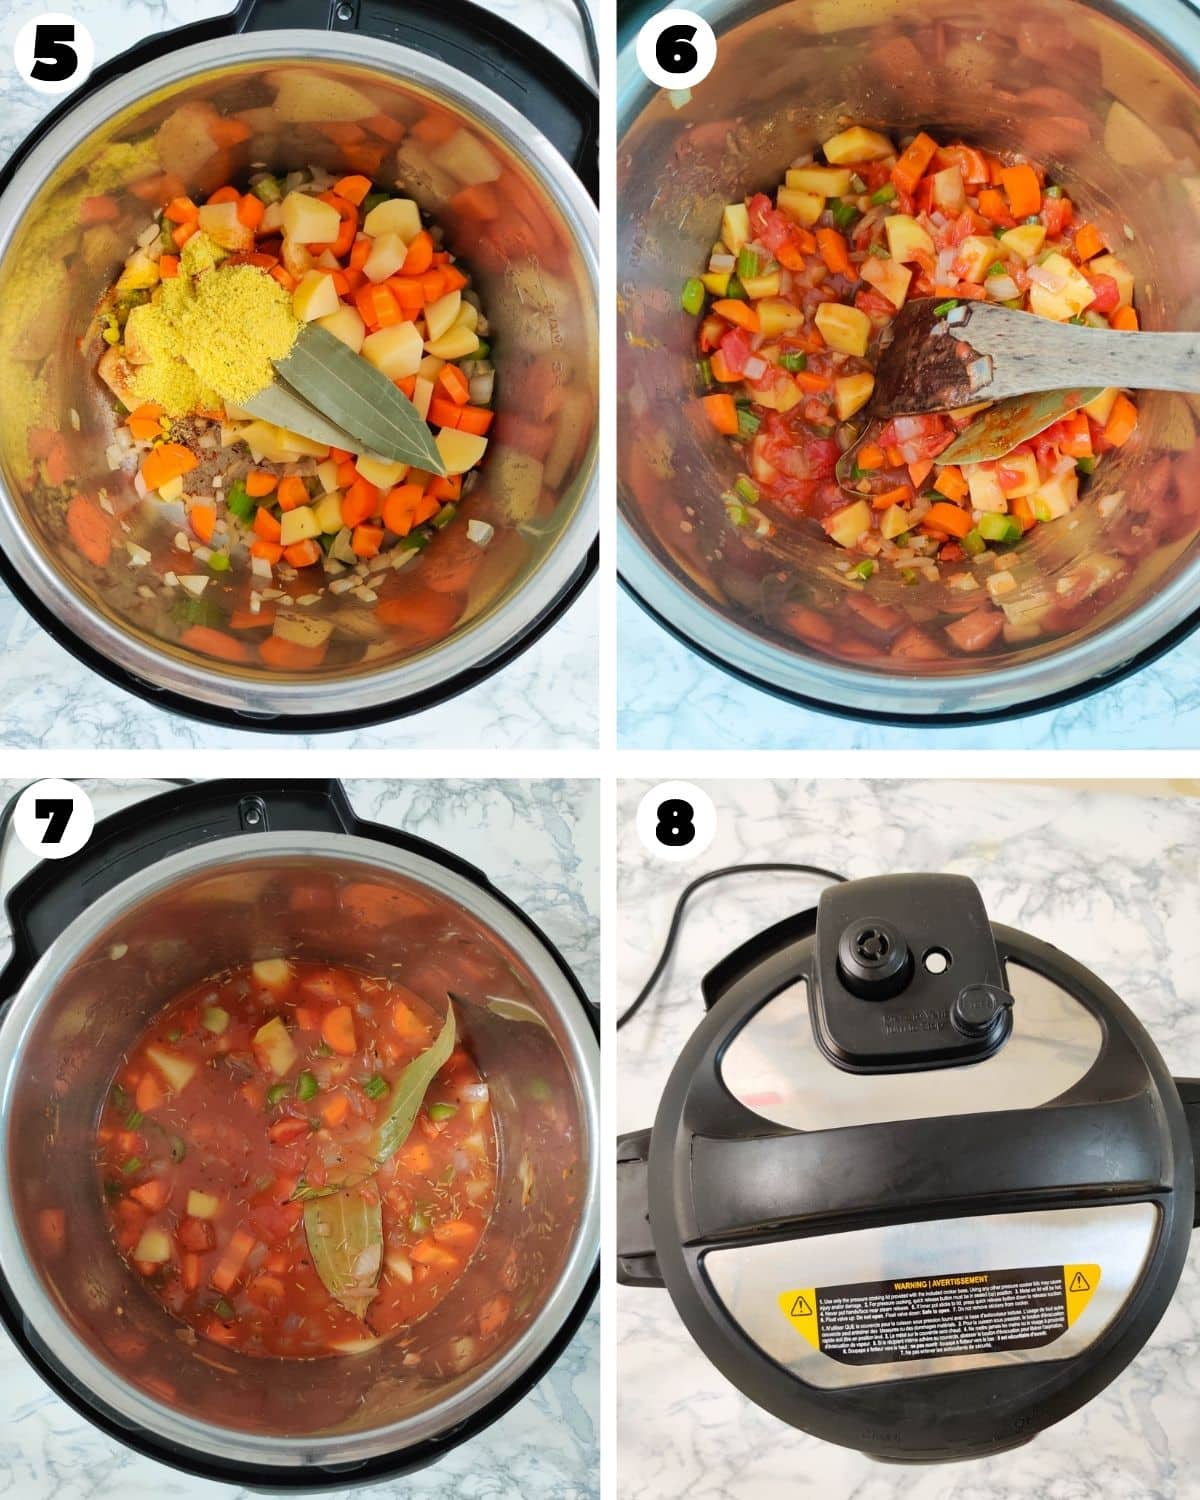 Steps to cook chicken stew in the Instant Pot